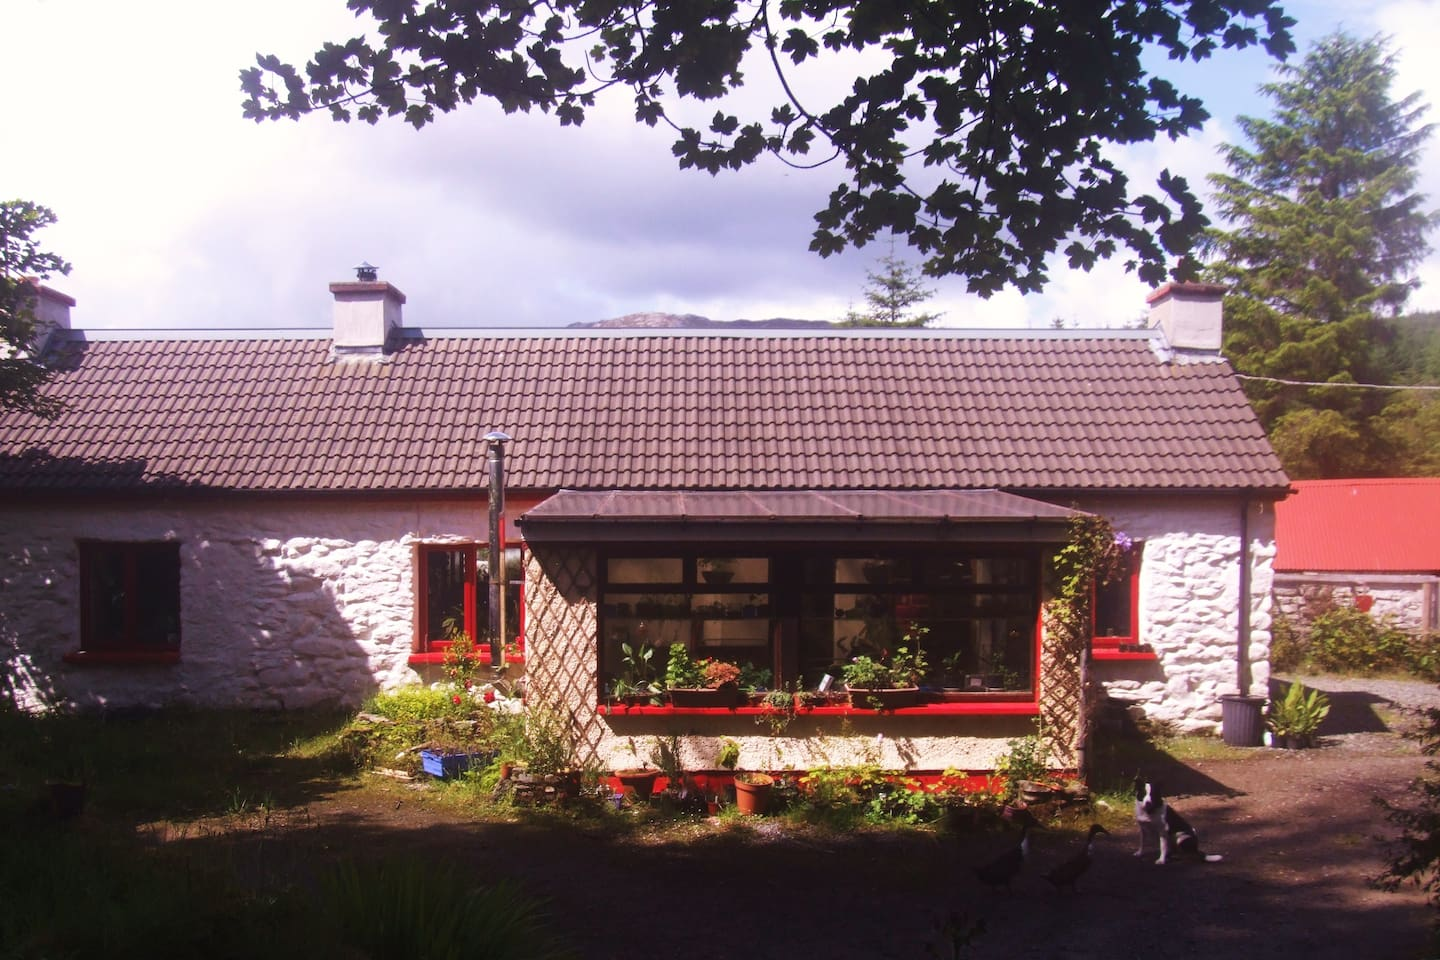 Welcome to our cottage in the hills of Donegal